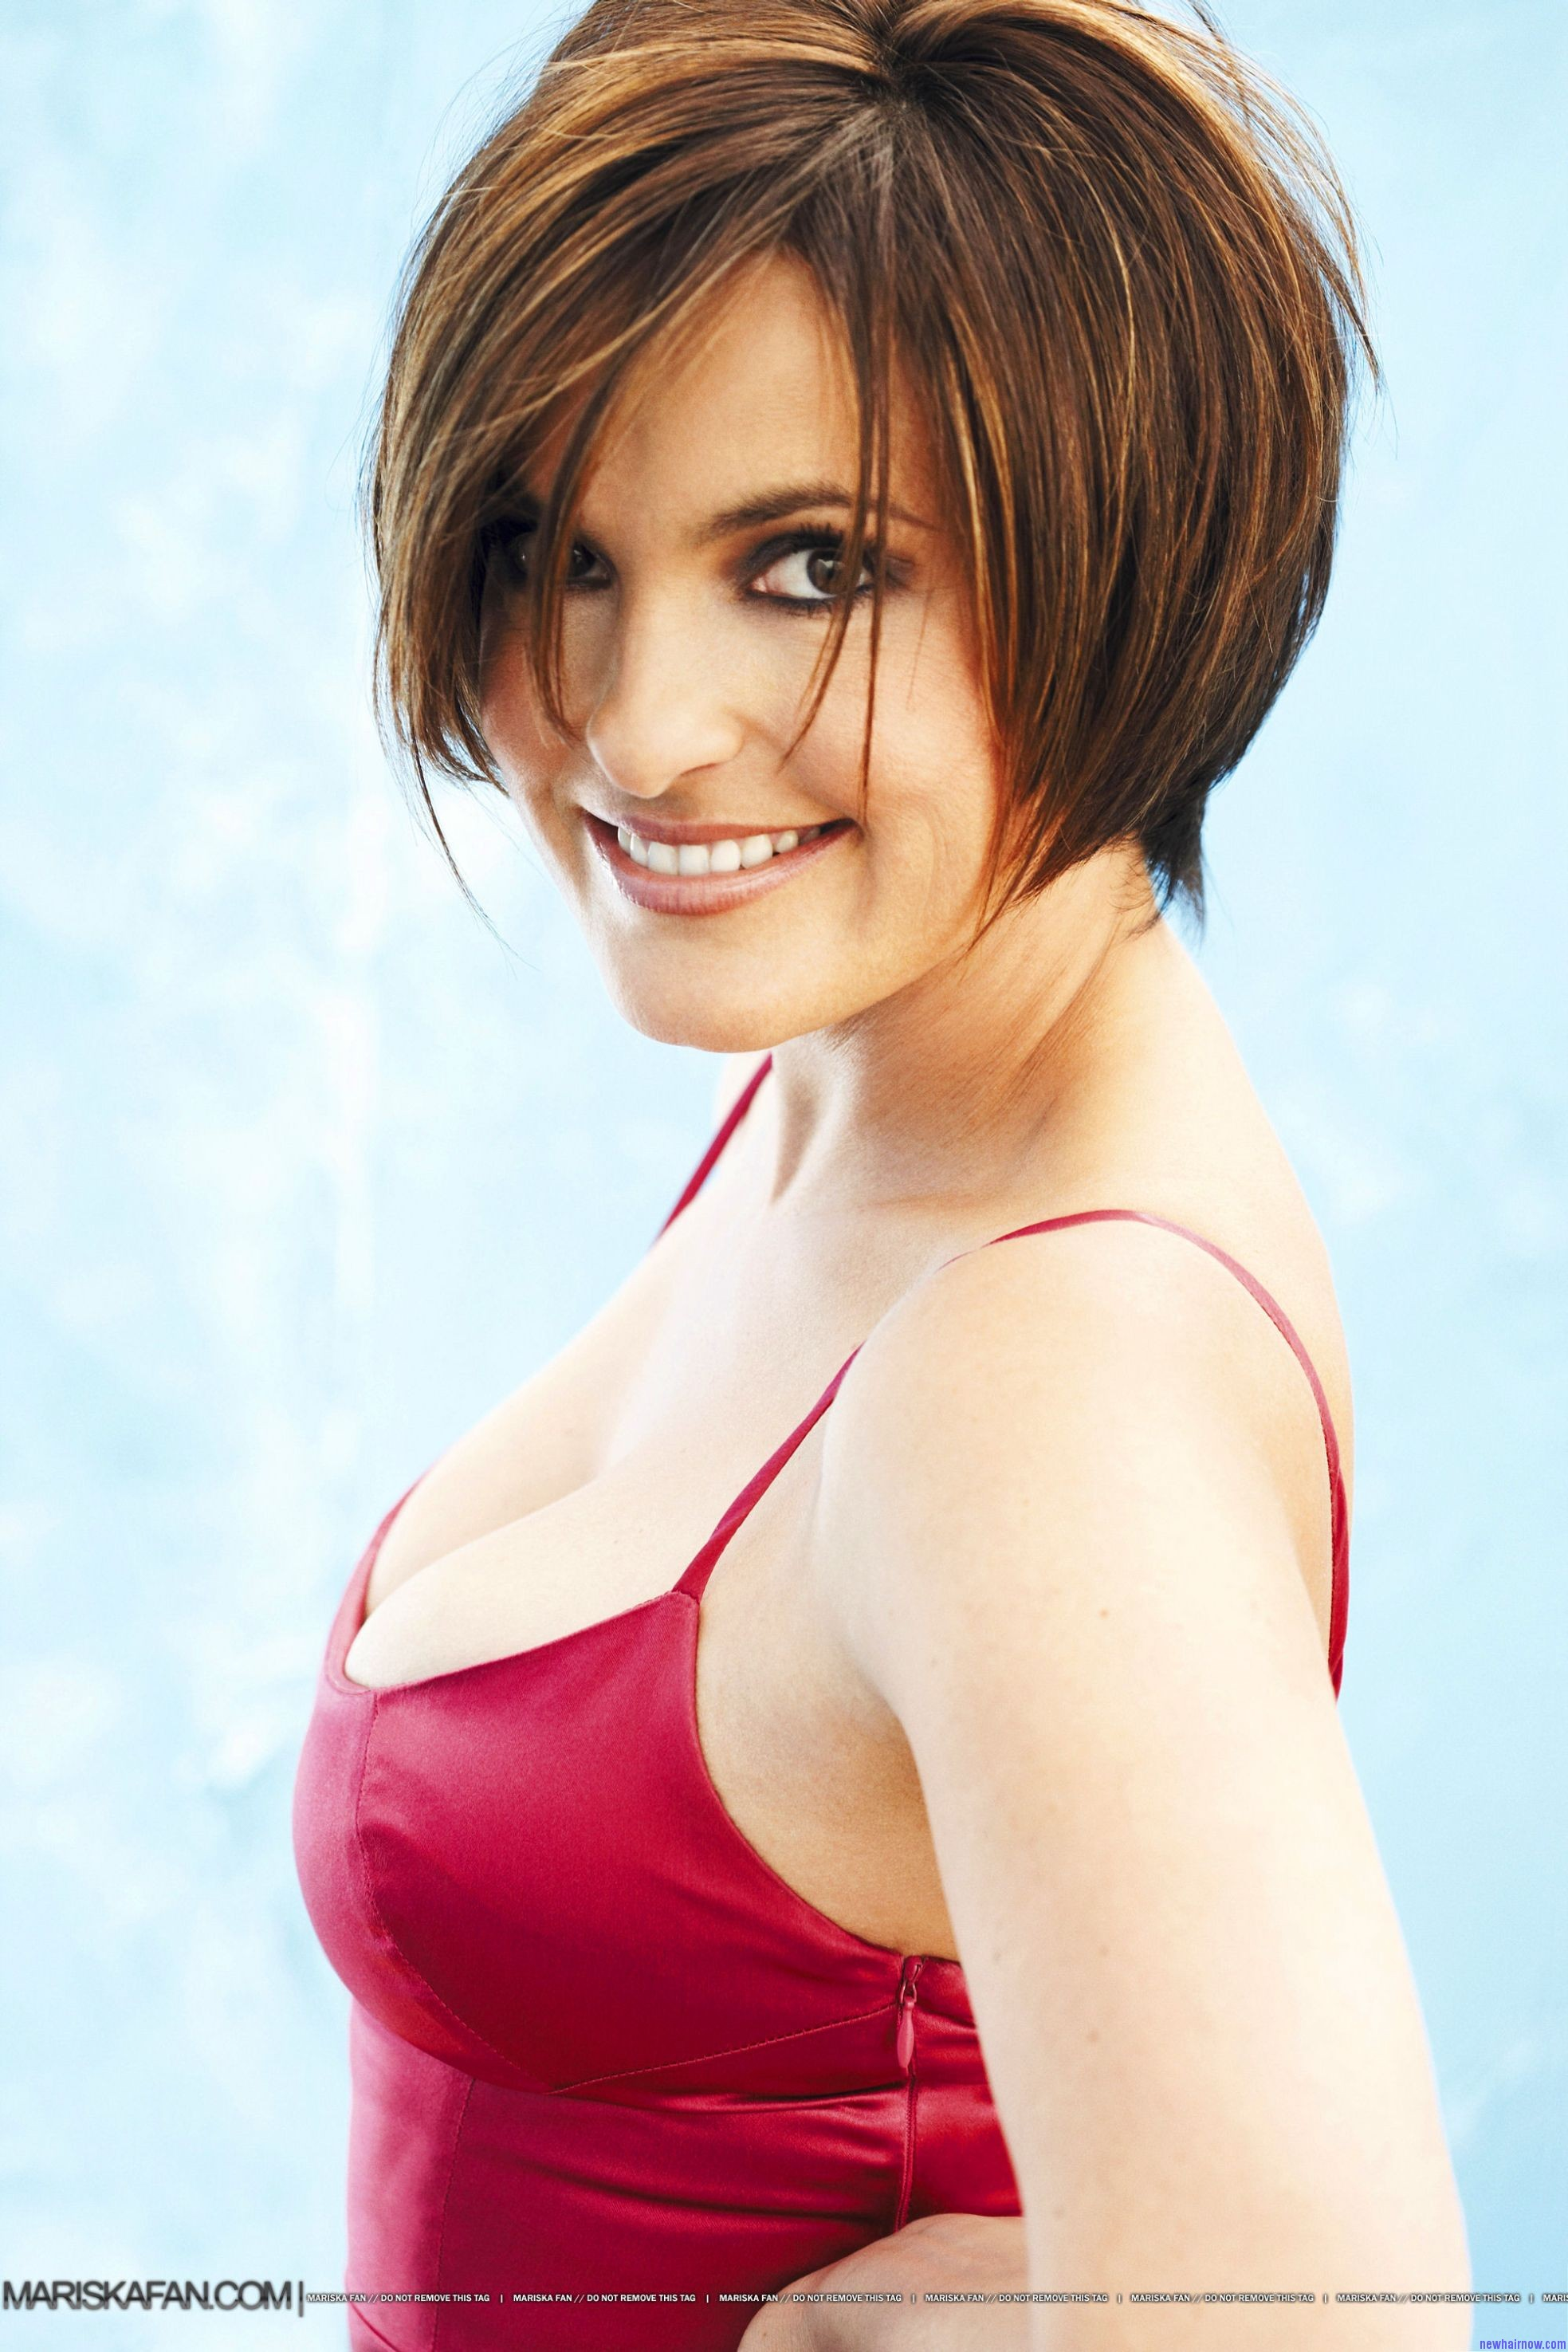 Mariska Hargitay New Hair Now